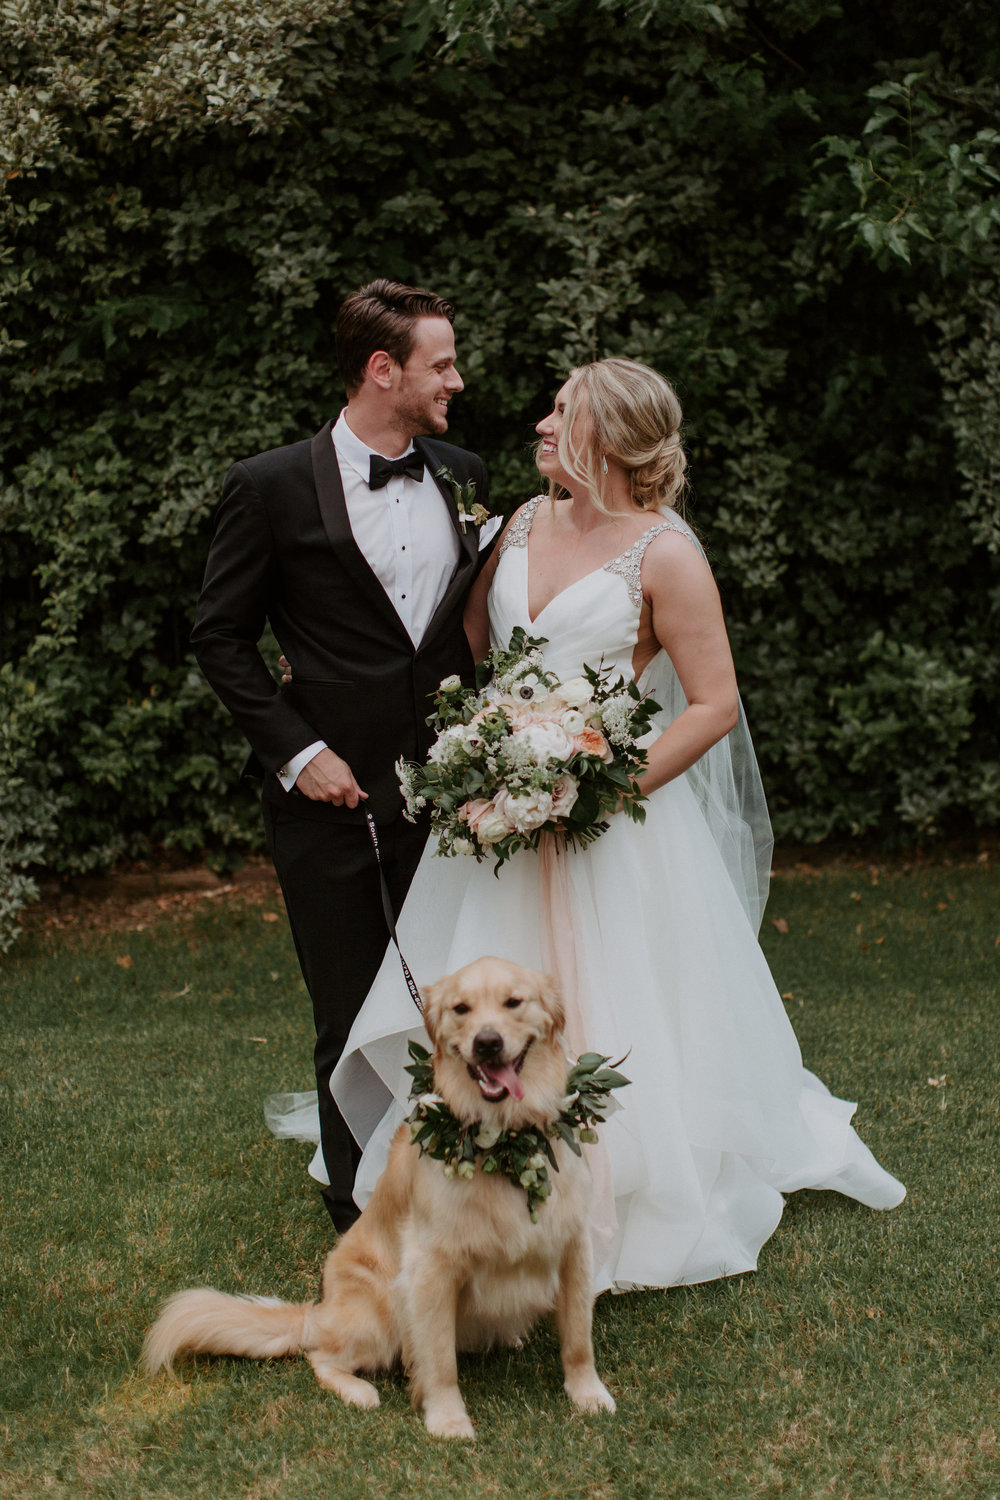 Daniel and I wanted our pup, Nelson, to be a part of the wedding day. He walked out into the ceremony with the groomsmen, so of course he needed to have a floral collar. He was the real star of the show, if you ask me.